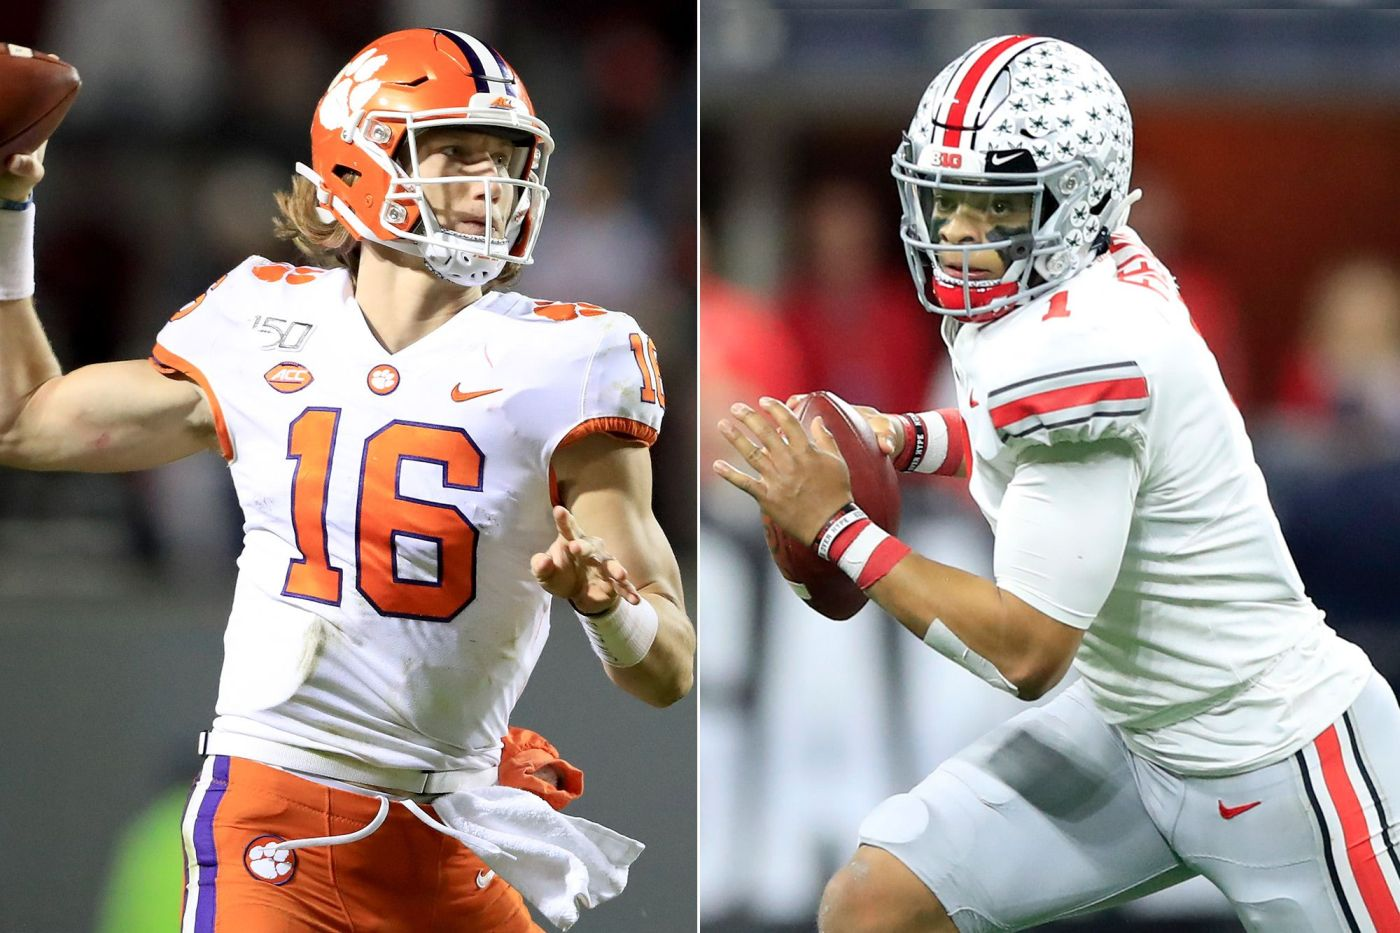 Trevor Lawrence & Justin Fields expect to hear their names called early in the 2021 NFL Draft